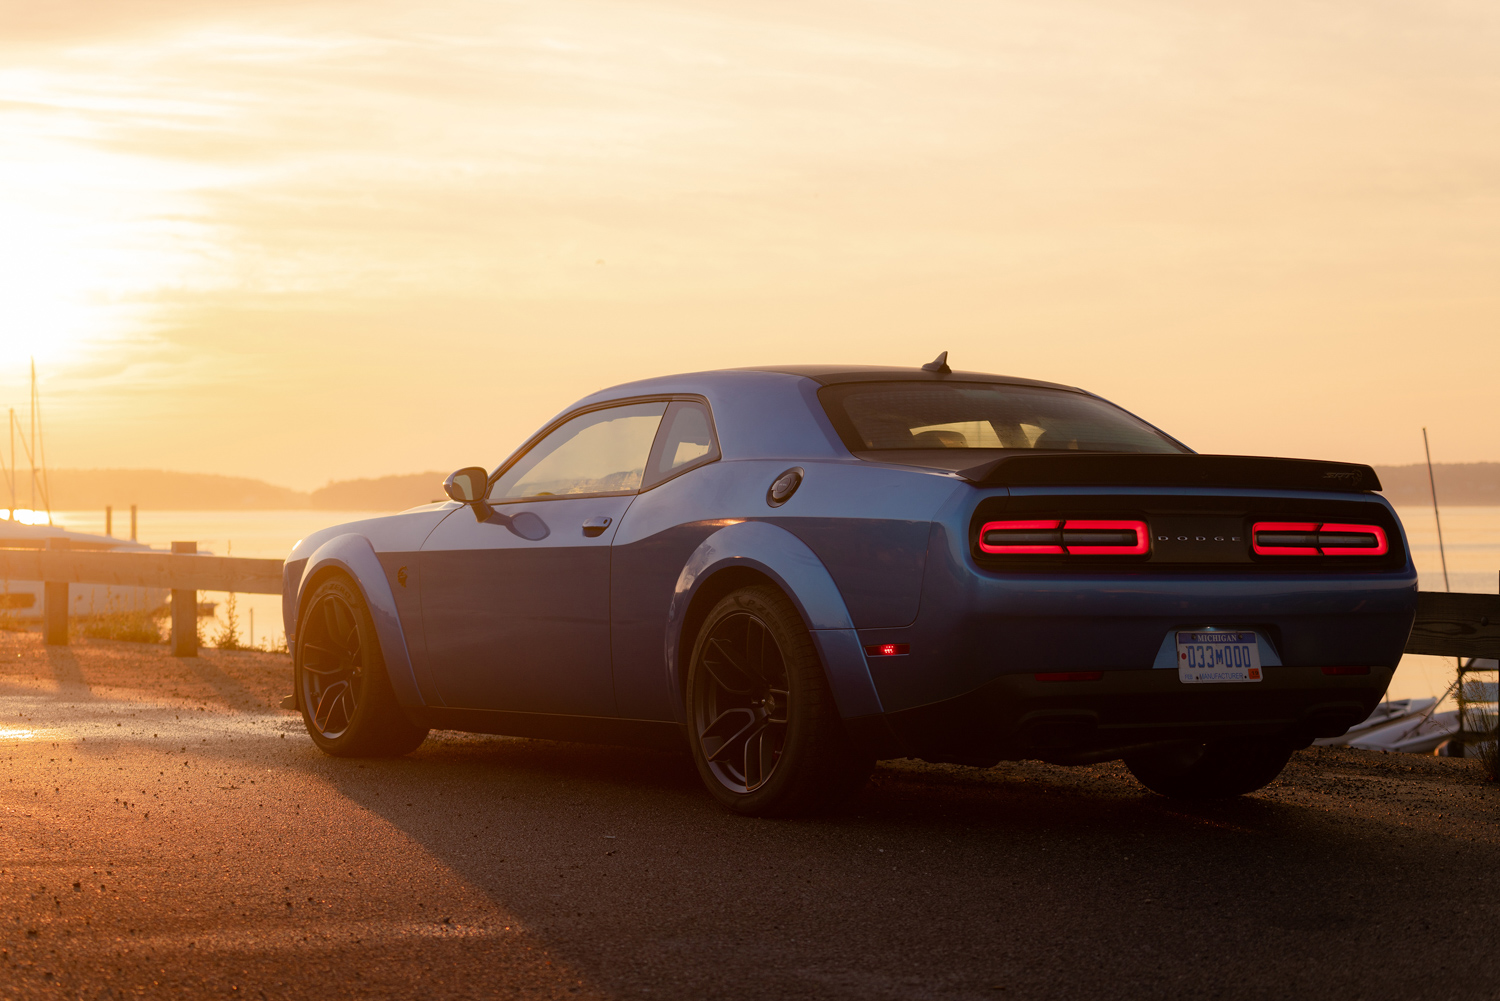 2019 Challenger SRT Hellcat Redeye Widebody rear 3/4 sunset